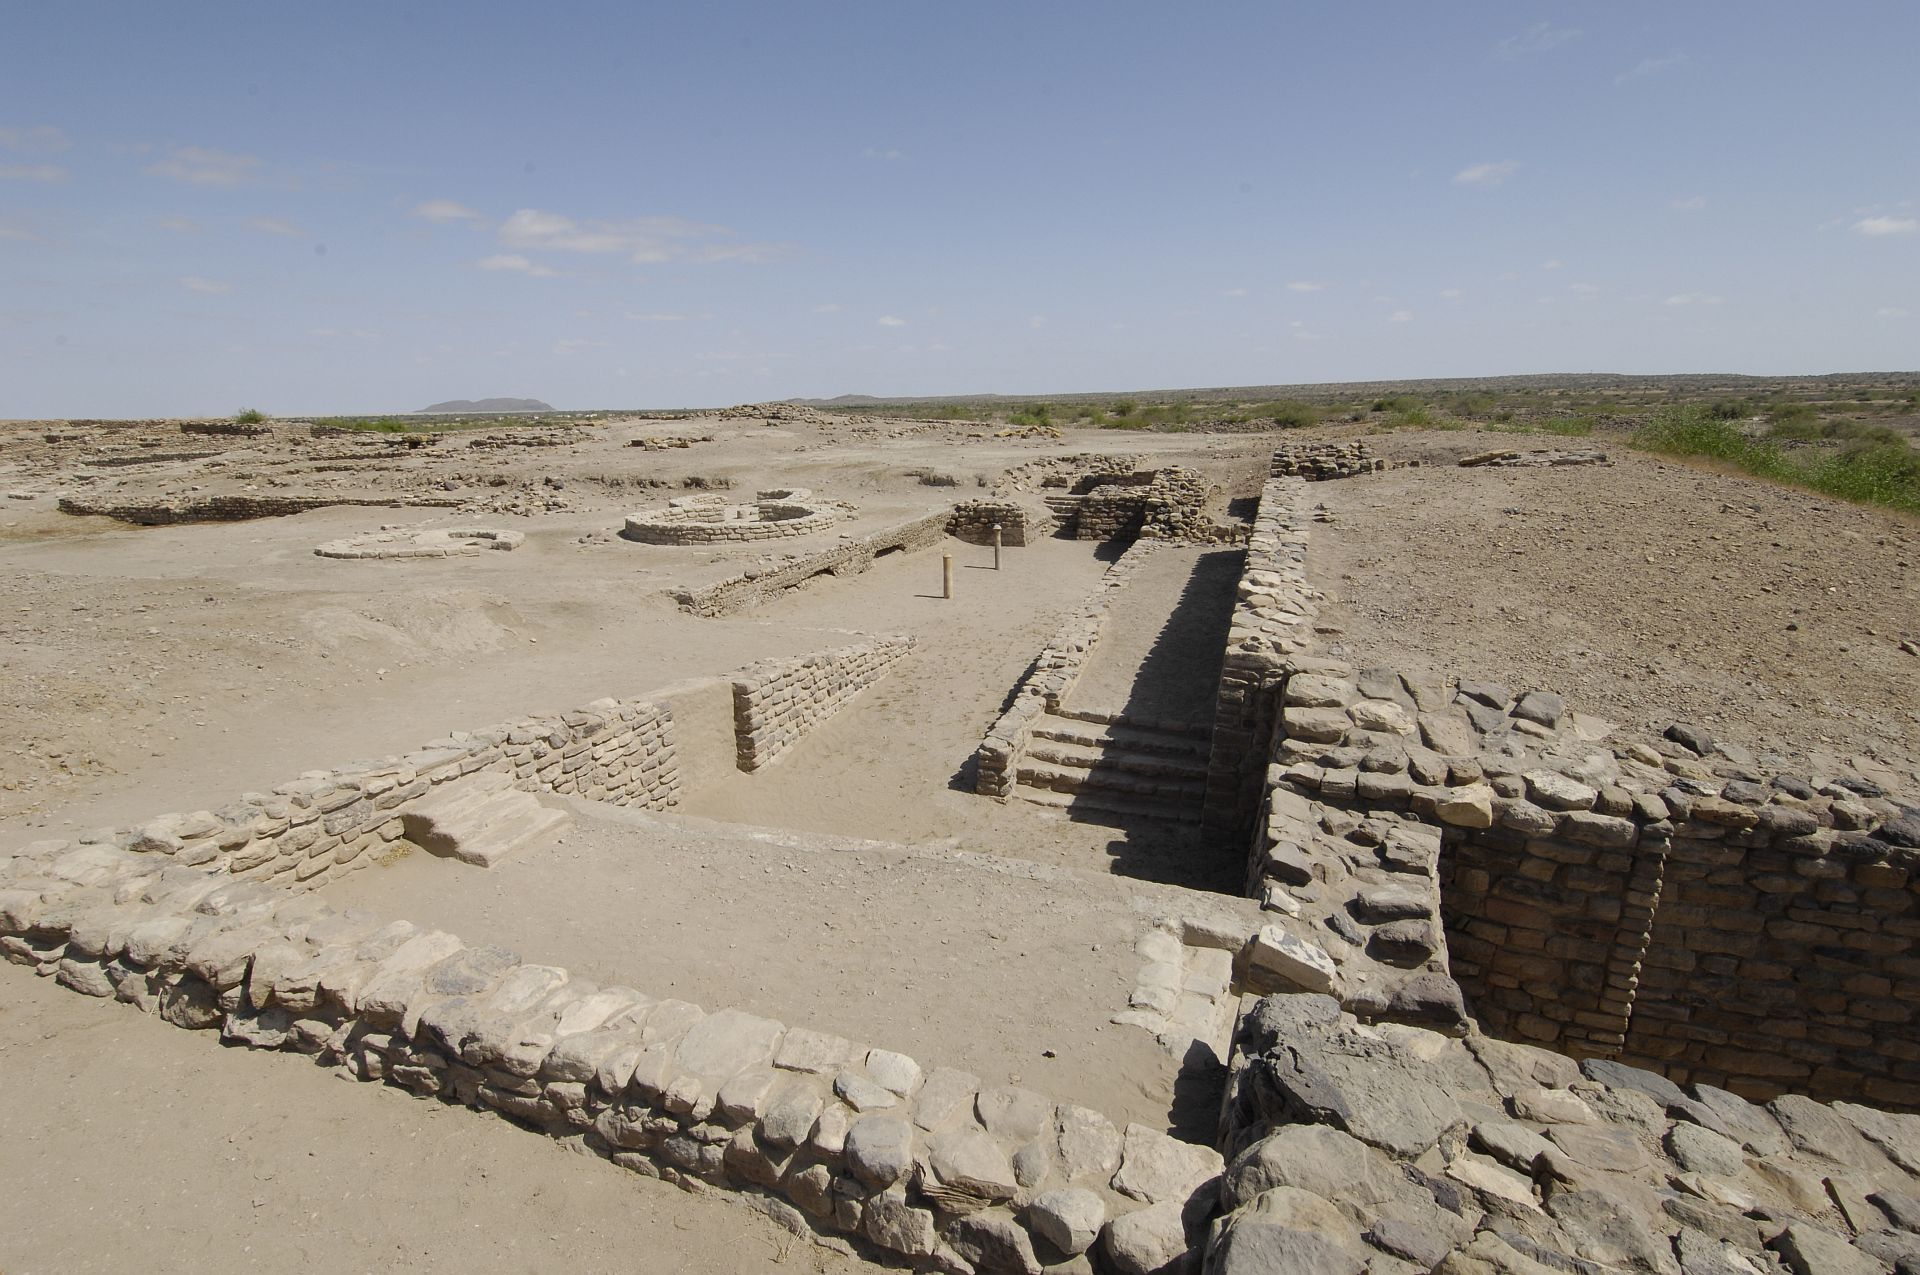 an analysis of harappa culture of the indus valley Nevertheless, the indus valley civilization was one of the most advanced settlements of its day situated along the banks of the indus river moving inland from a few of the most well-known indus cities include mohenjo-daro and harappa all cities were designed according to a master plan, and.